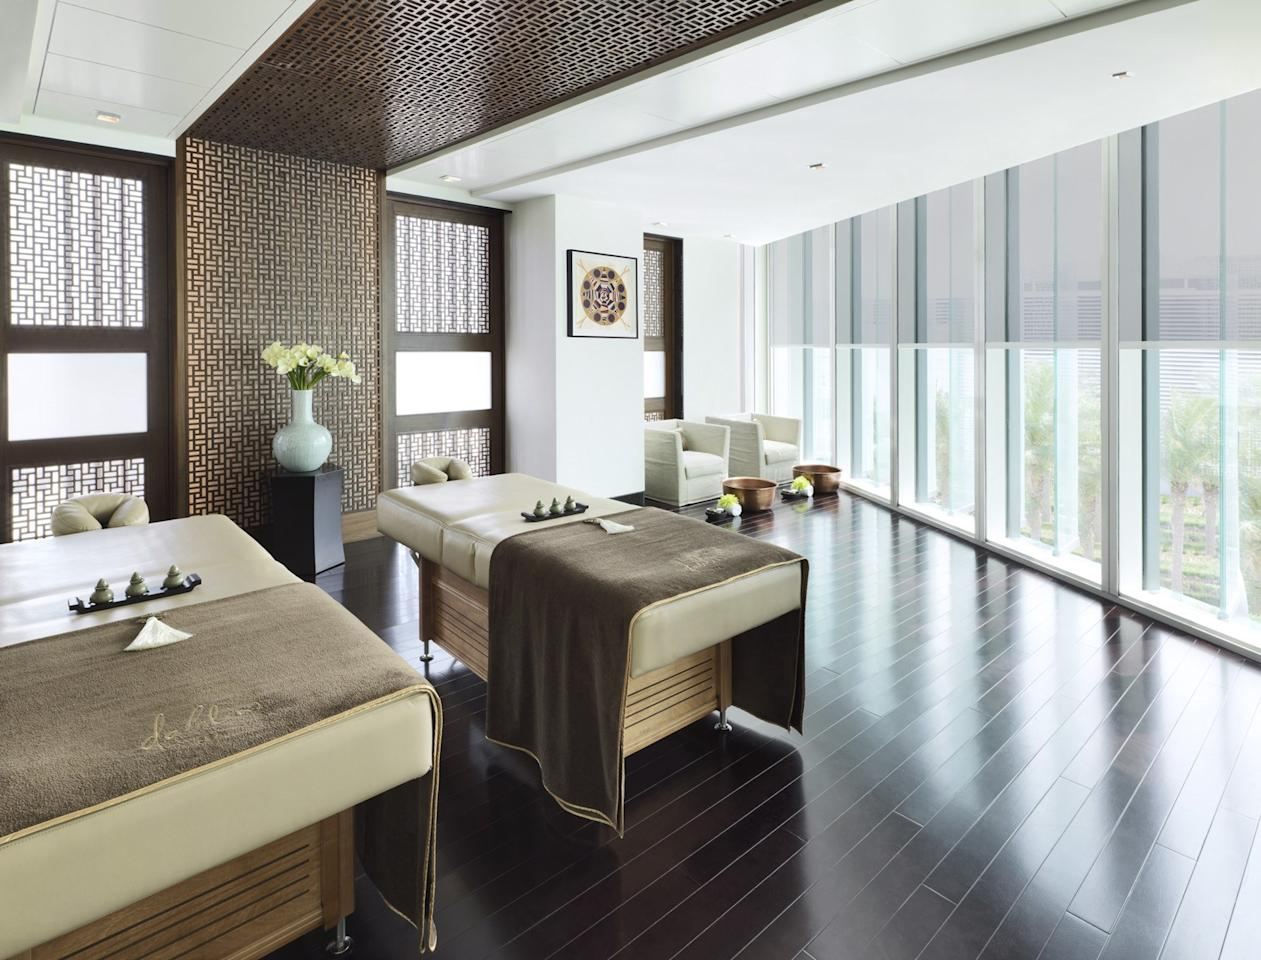 """<p><strong>What's the vibe at this place?</strong> Classy and indulgent, much like its <a href=""""https://www.cntraveler.com/hotels/abu-dhabi/four-seasons-hotel-abu-dhabi-at-al-maryah?mbid=synd_yahoo_rss"""">Four Seasons</a> home, the stylish Dahlia Spa, a 21,500-foot space, has the only quartz sand therapy treatment in the emirate. The third-floor wellness space exudes intimacy, extravagance, and relaxation.</p> <p><strong>Take us into the room. How was the session itself?</strong> Treatment rooms are spacious and welcoming, with crisp whites, chocolate browns, and statement mashrabiya (locally inspired wooden latticework). Our facialist was friendly and thorough; the scents were understated yet fresh; the music was soothing and products hailed from high-end brands like Swiss Perfection, MarocMaroc, Sodashi, and Biologique Recherche.</p> <p><strong>What about after the treatment?</strong> After our 60-minute anti-aging facial, we headed upstairs to the light-filled relaxation area. Robes and fluffy brown towels were plush and comfortable.</p> <p><strong>What do they do best here, then? And how can we make sure we get the most out of it?</strong> Our skin was brighter at the end of the hour—an impressive feat. Be sure to visit at least 30 minutes ahead of time to enjoy the dedicated men's and women's wet areas, where you can soak in the hydrotherapy pool, use the steam room, or relax on one of the heated loungers.</p>"""